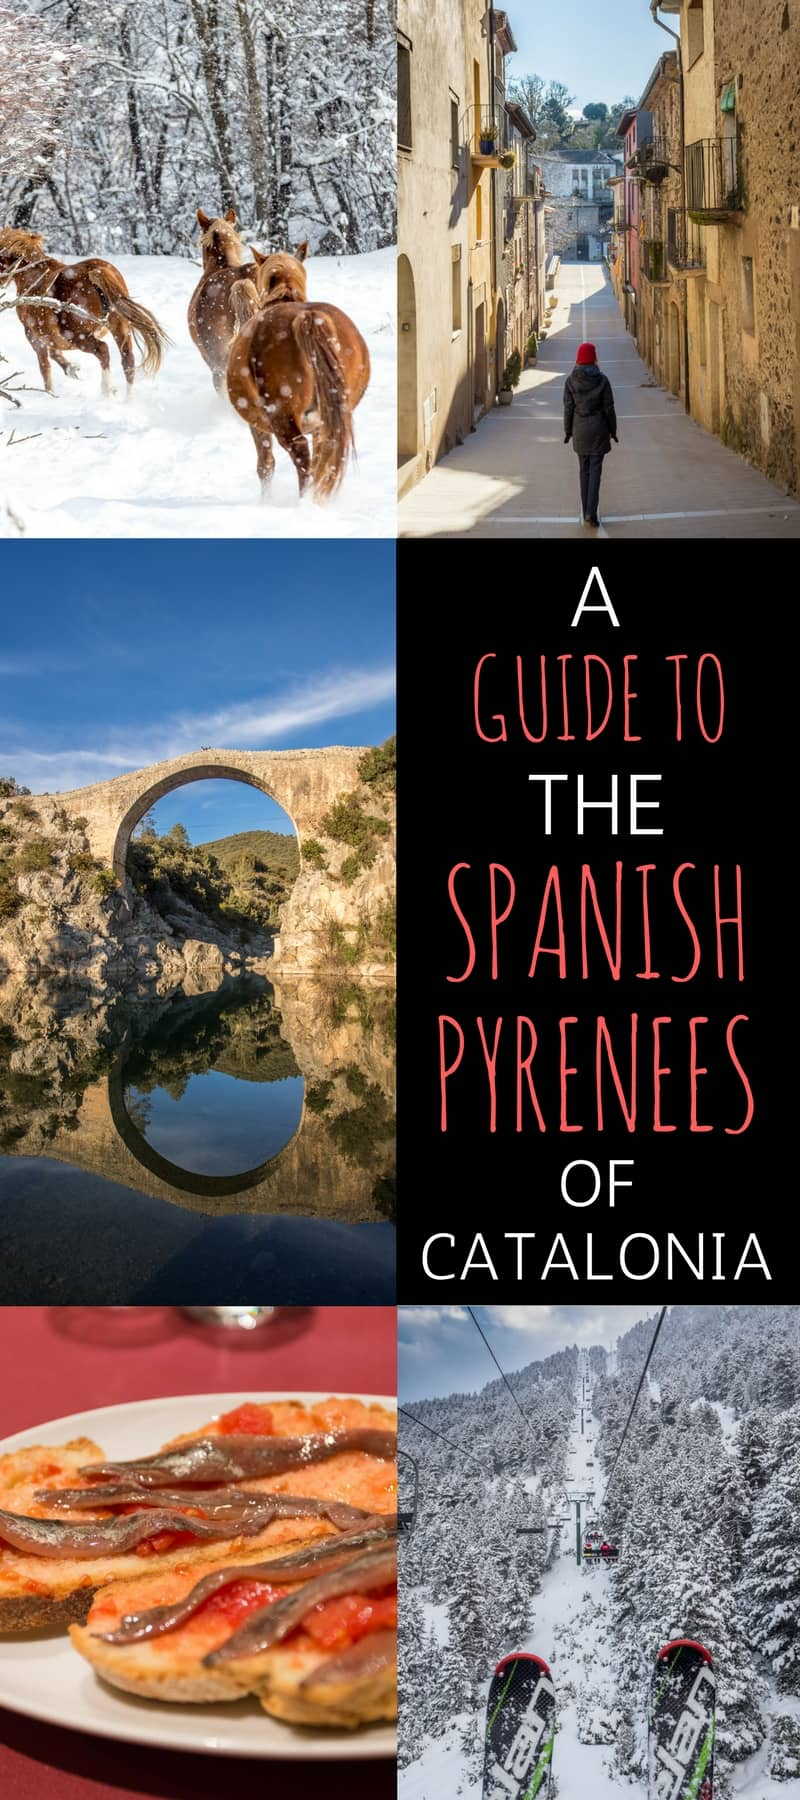 A comprehensive guide of where to go, what to eat, and things to do in the Spanish Pyrenees of Catalona, a lesser known region of Spain: